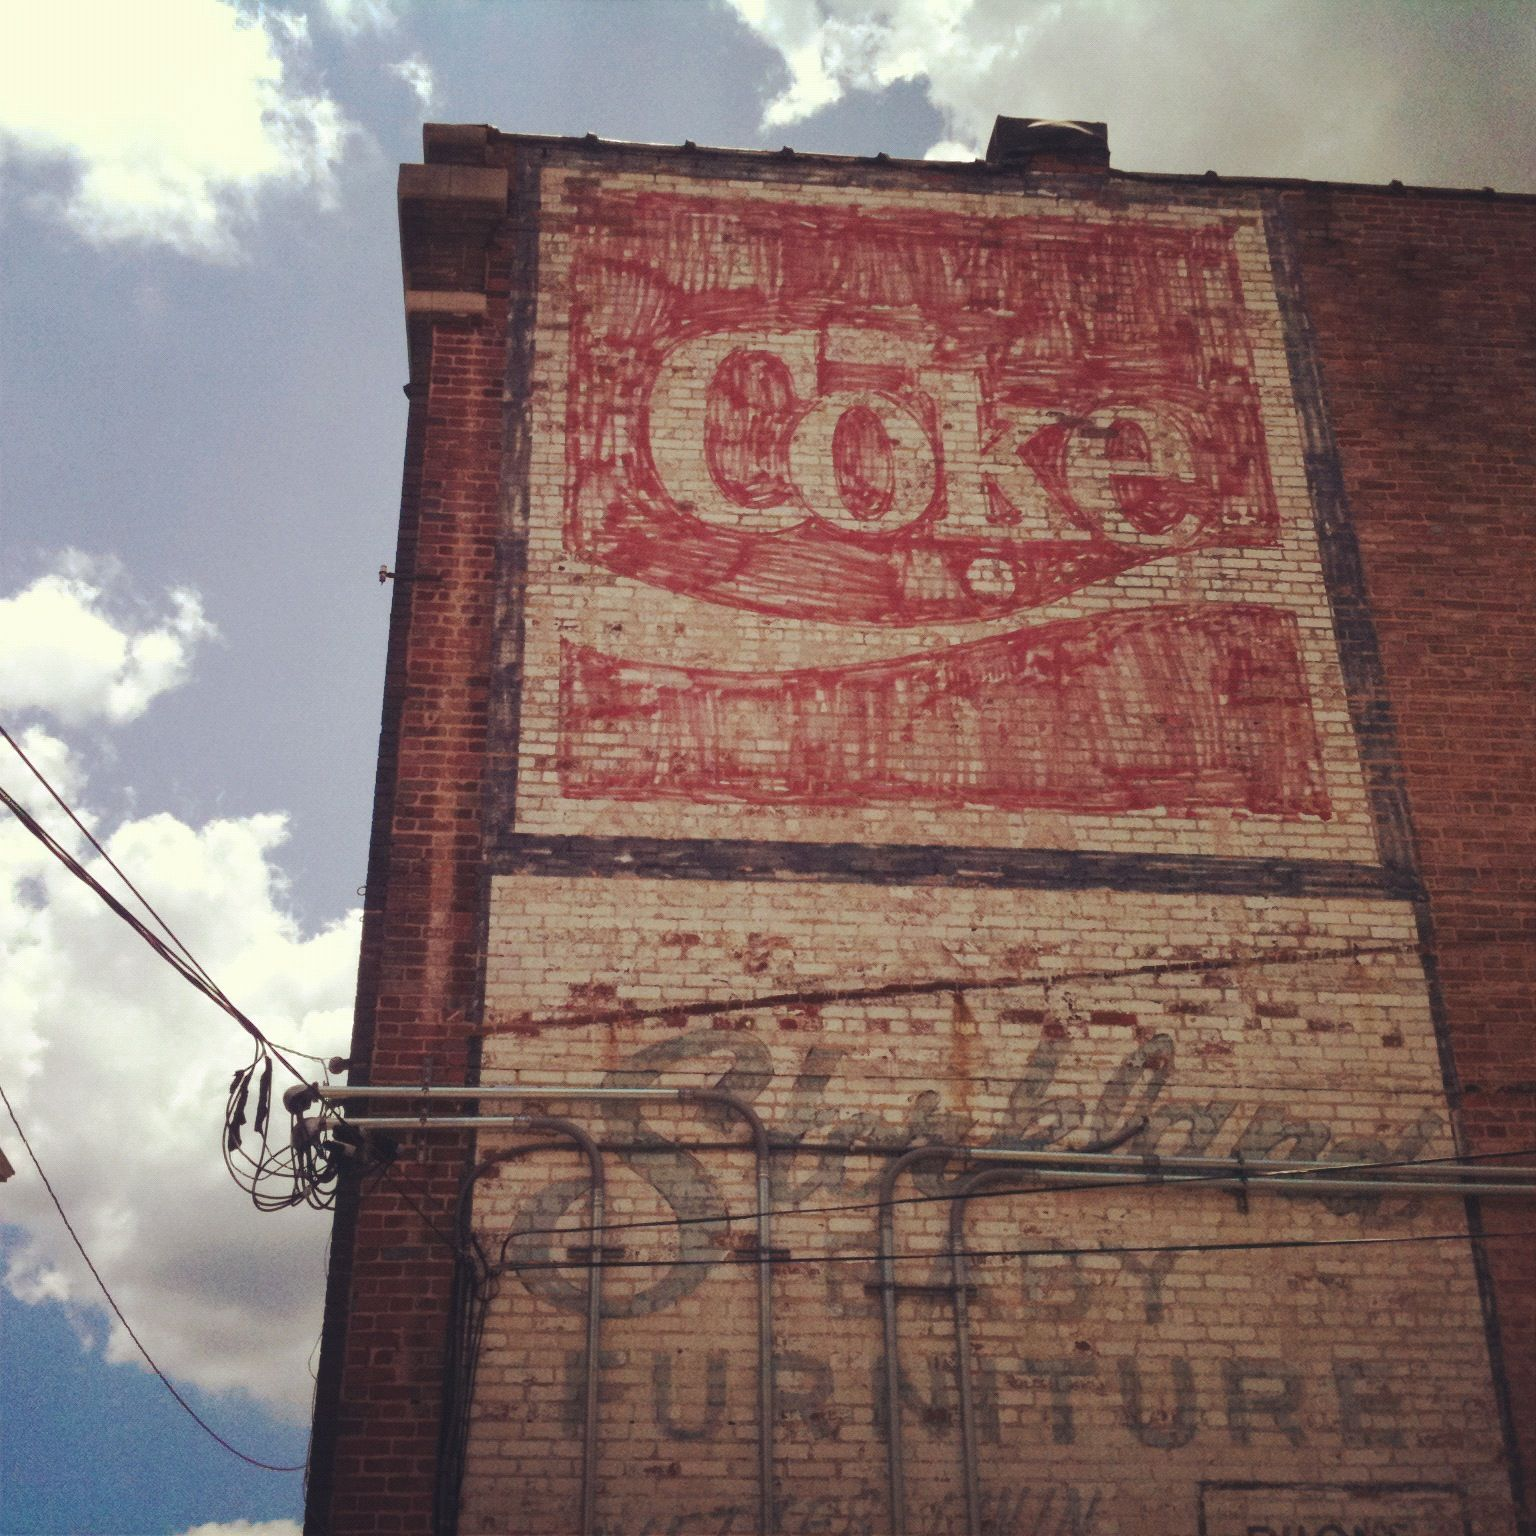 Storkland Baby Furniture Coke Fading Ads Ghost Signs